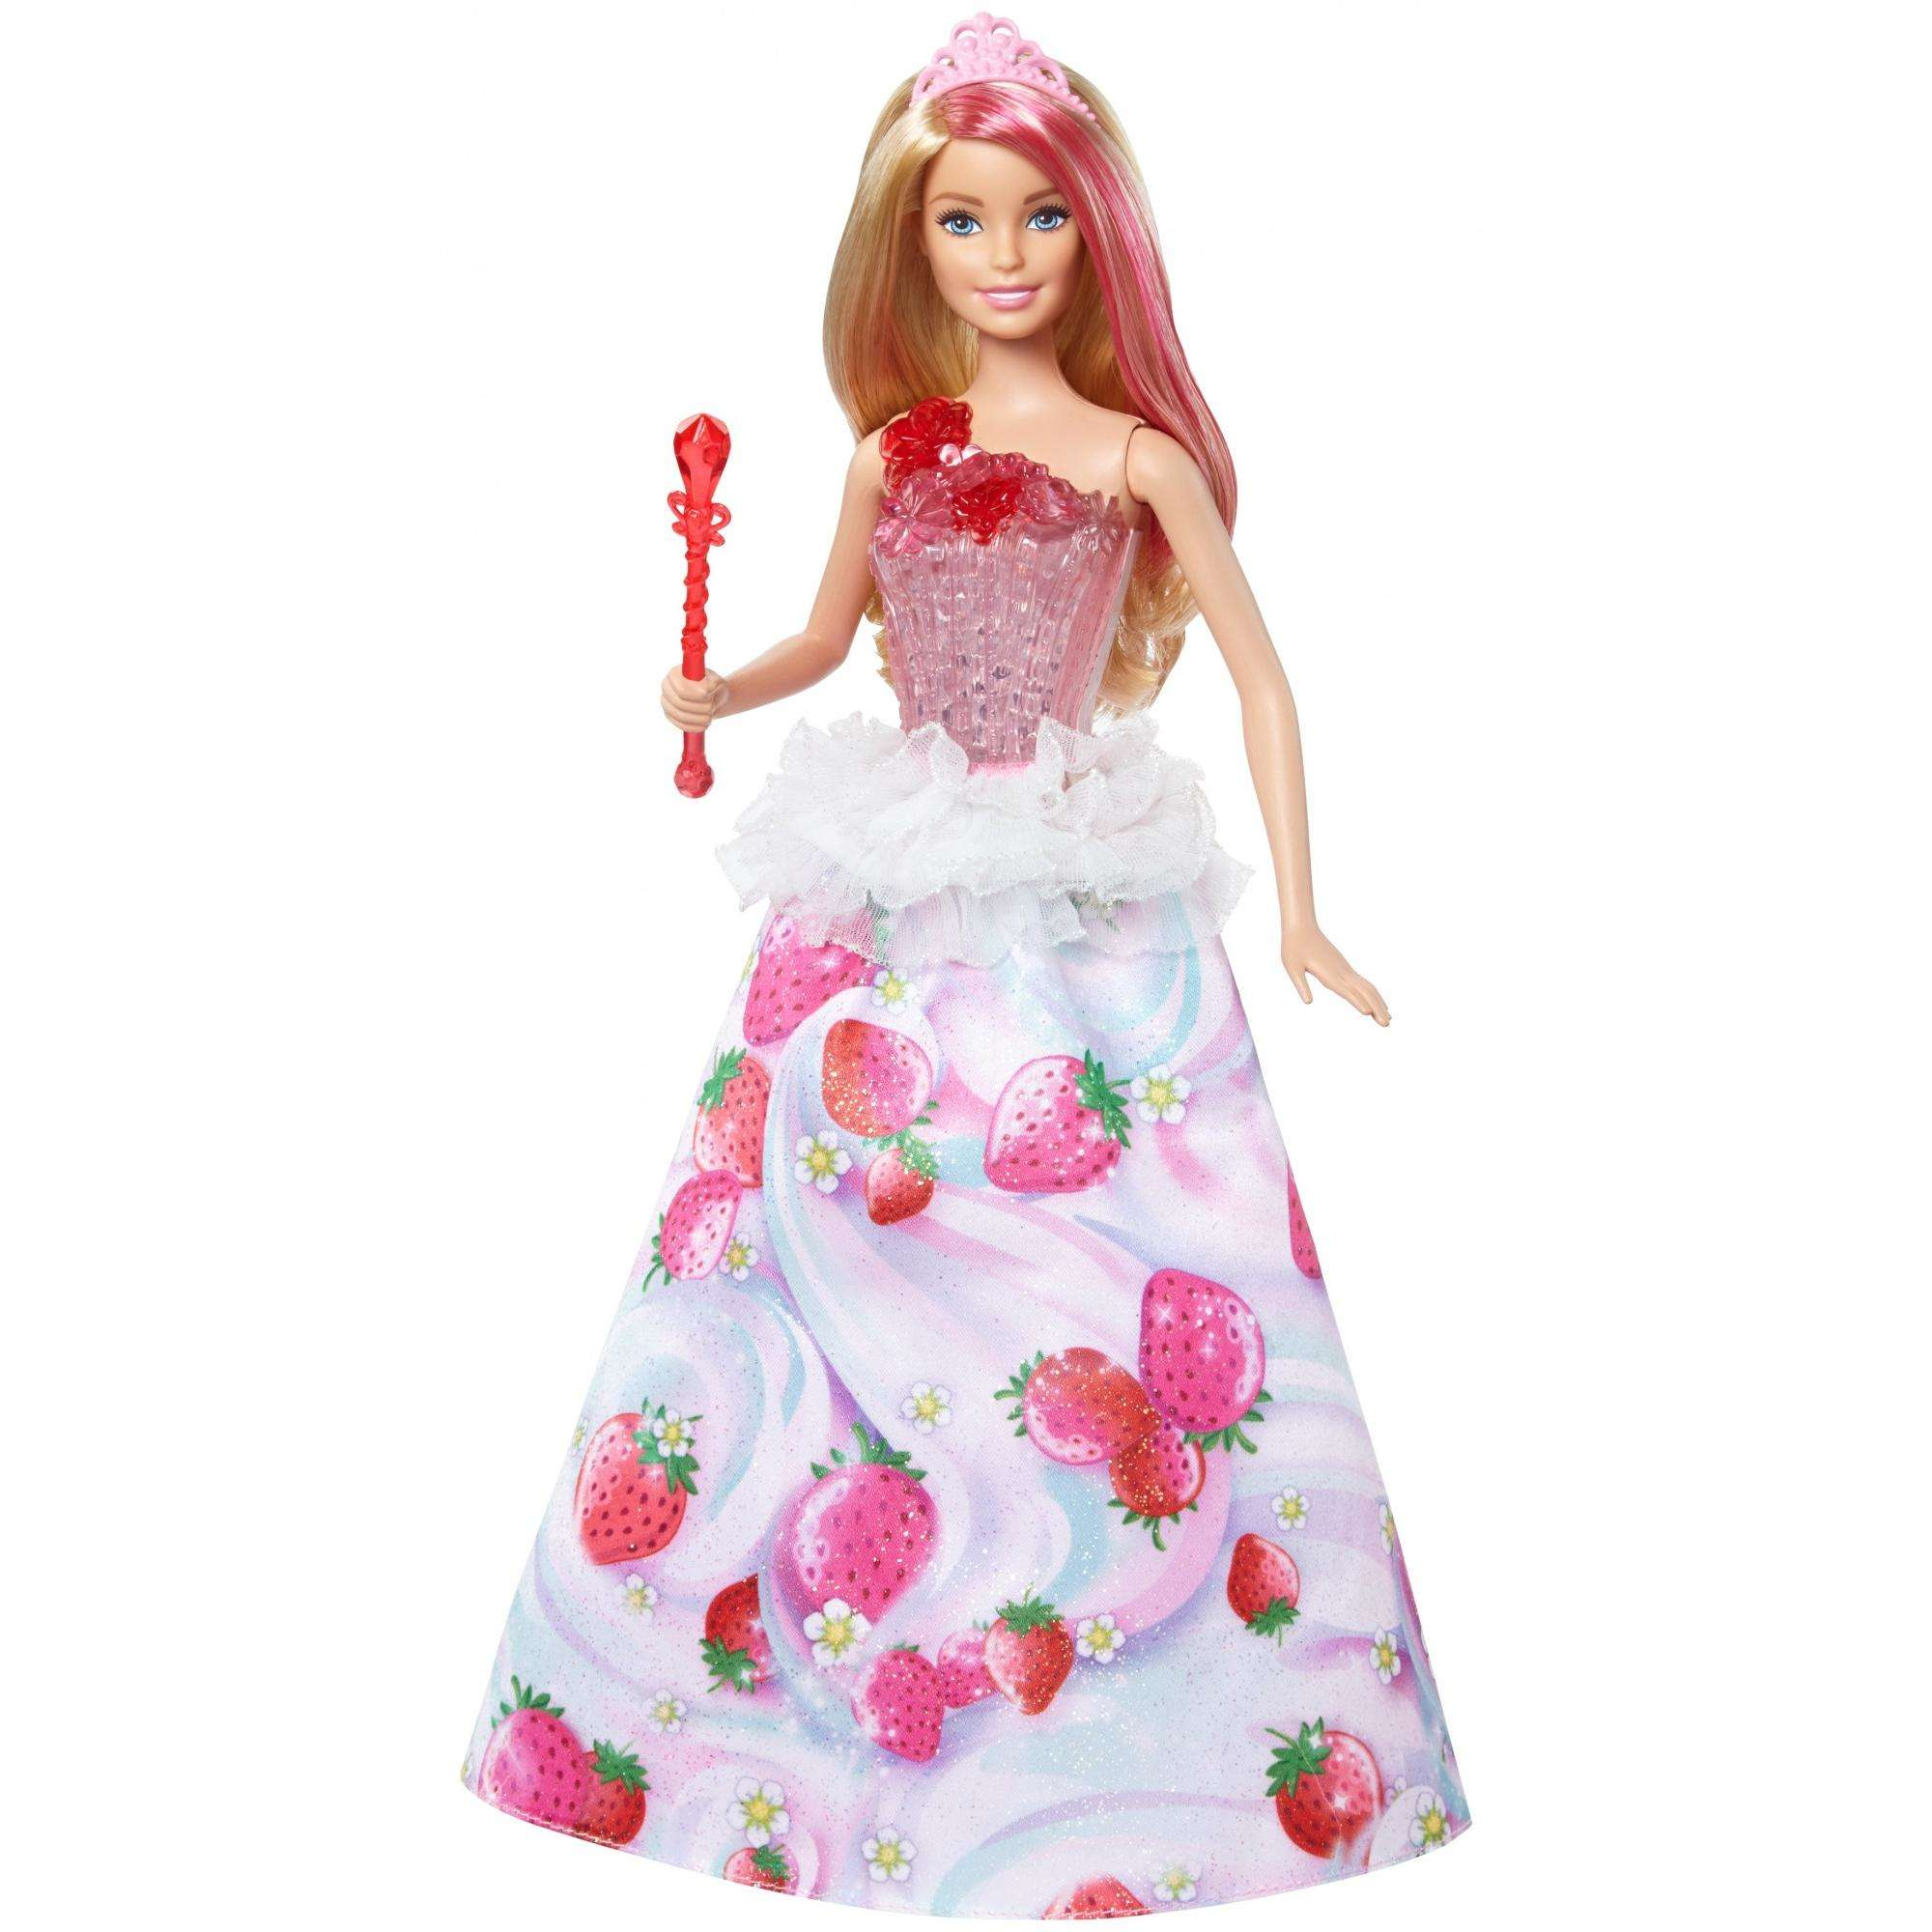 Barbie Dreamtopia Sweetville Princess by Mattel